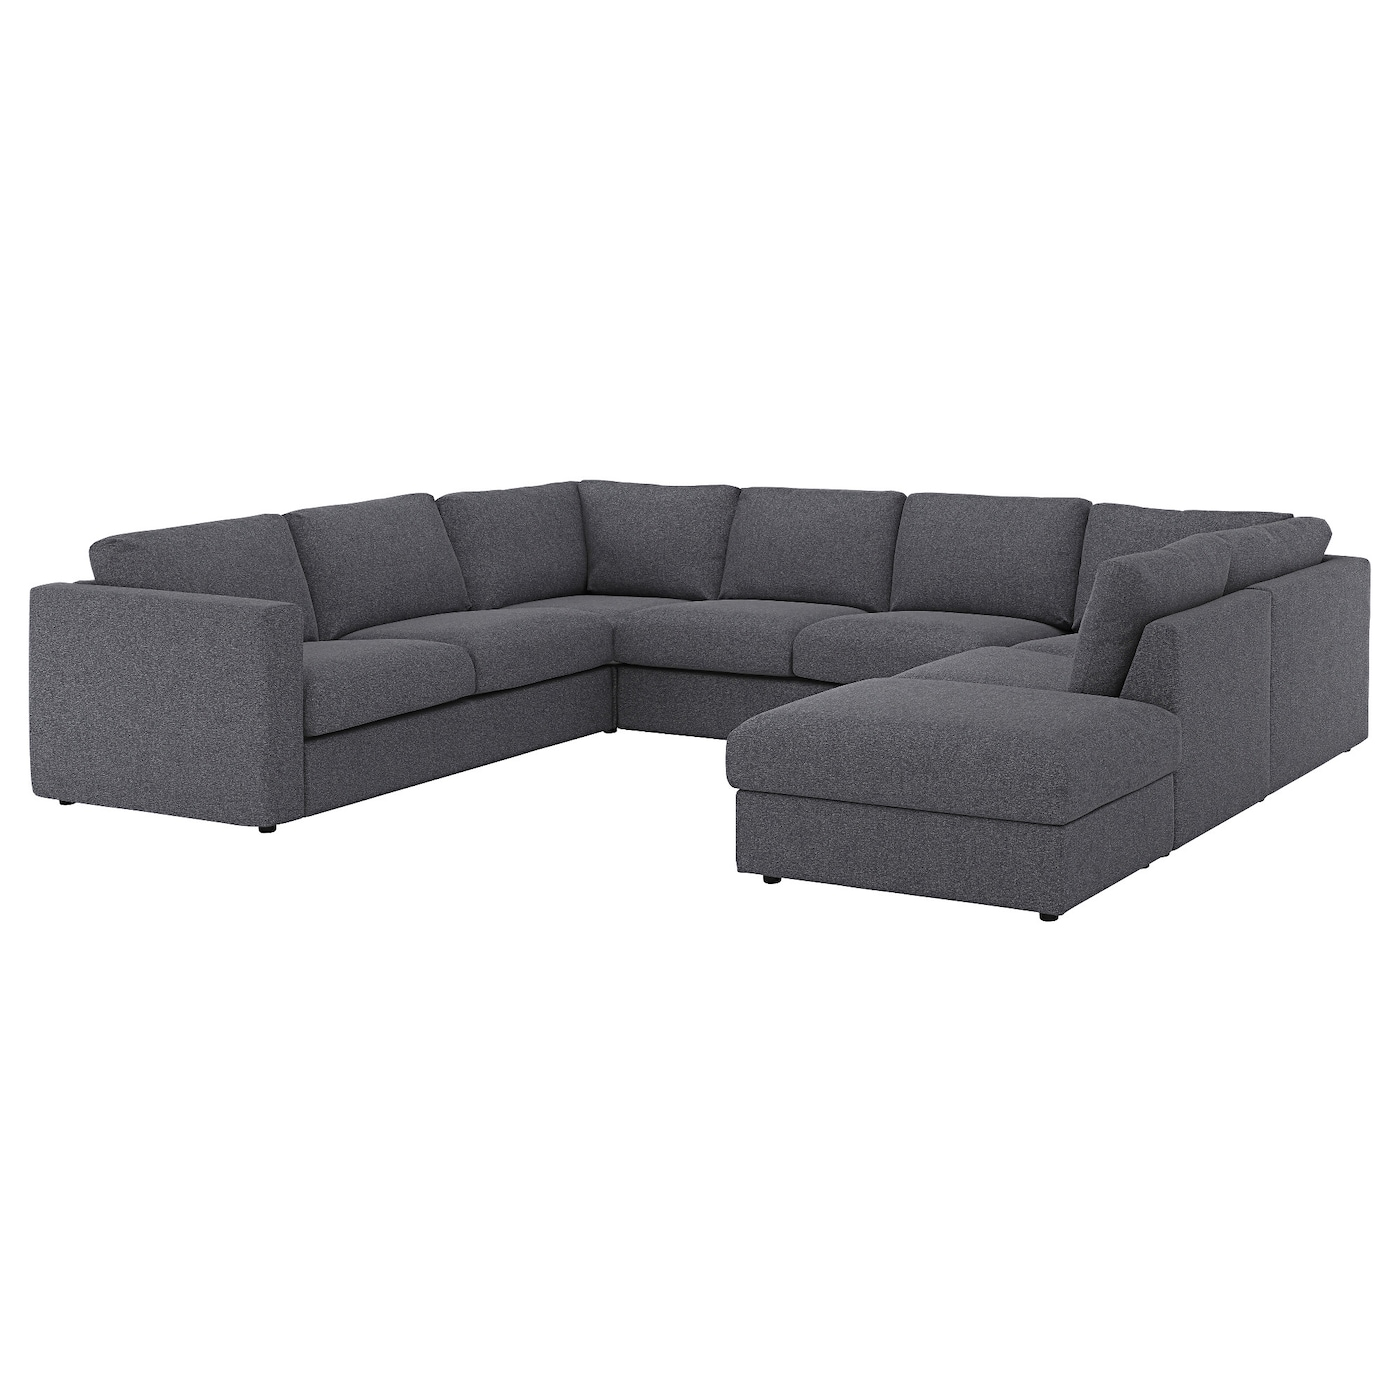 vimle u shaped sofa 6 seat with open end gunnared medium grey ikea. Black Bedroom Furniture Sets. Home Design Ideas